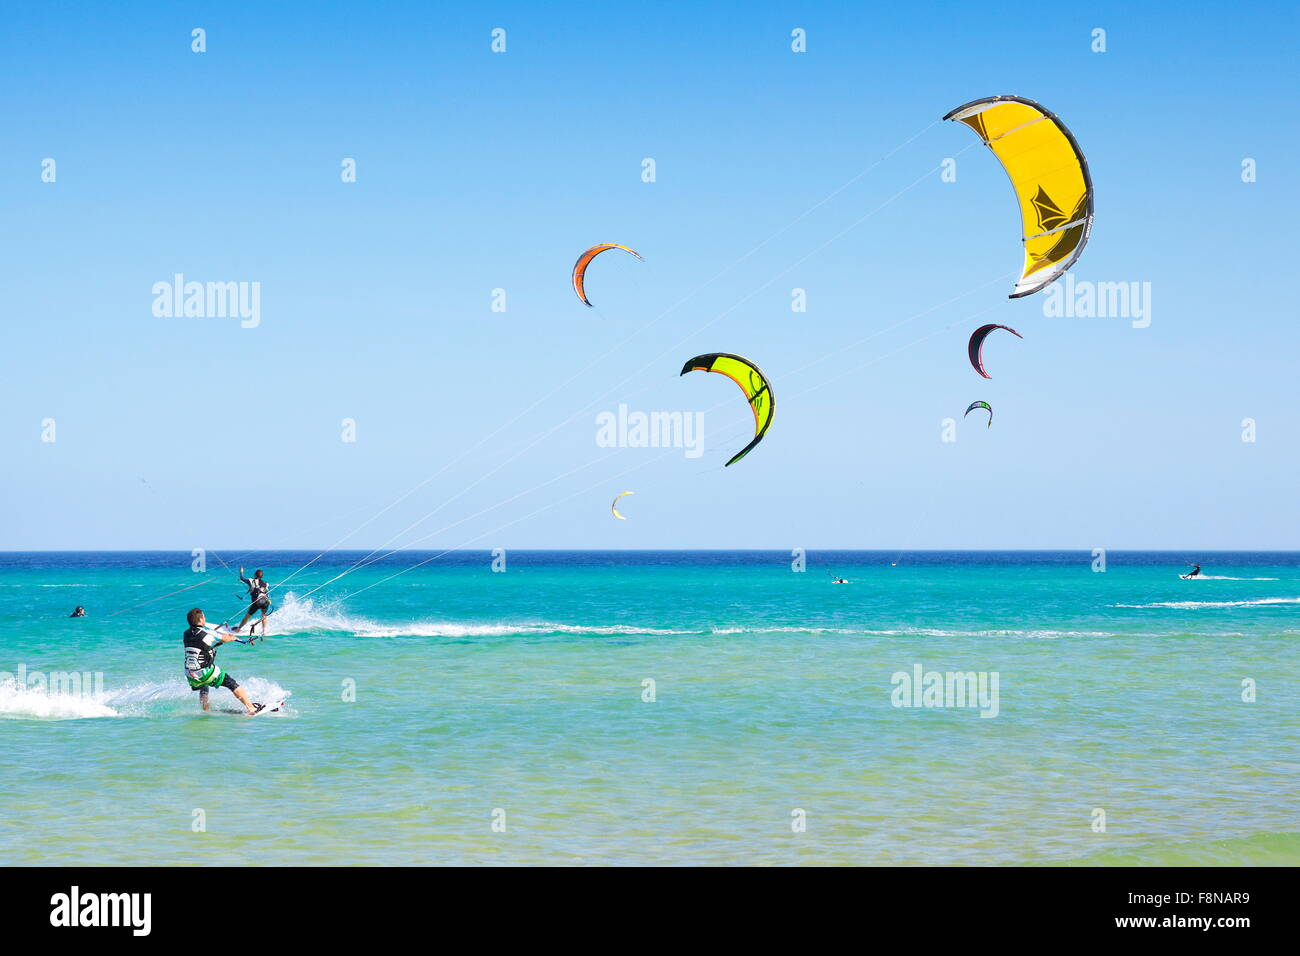 Canary Islands, Fuerteventura Island, kitesurfing at the beach near Costa Calma, Spain - Stock Image